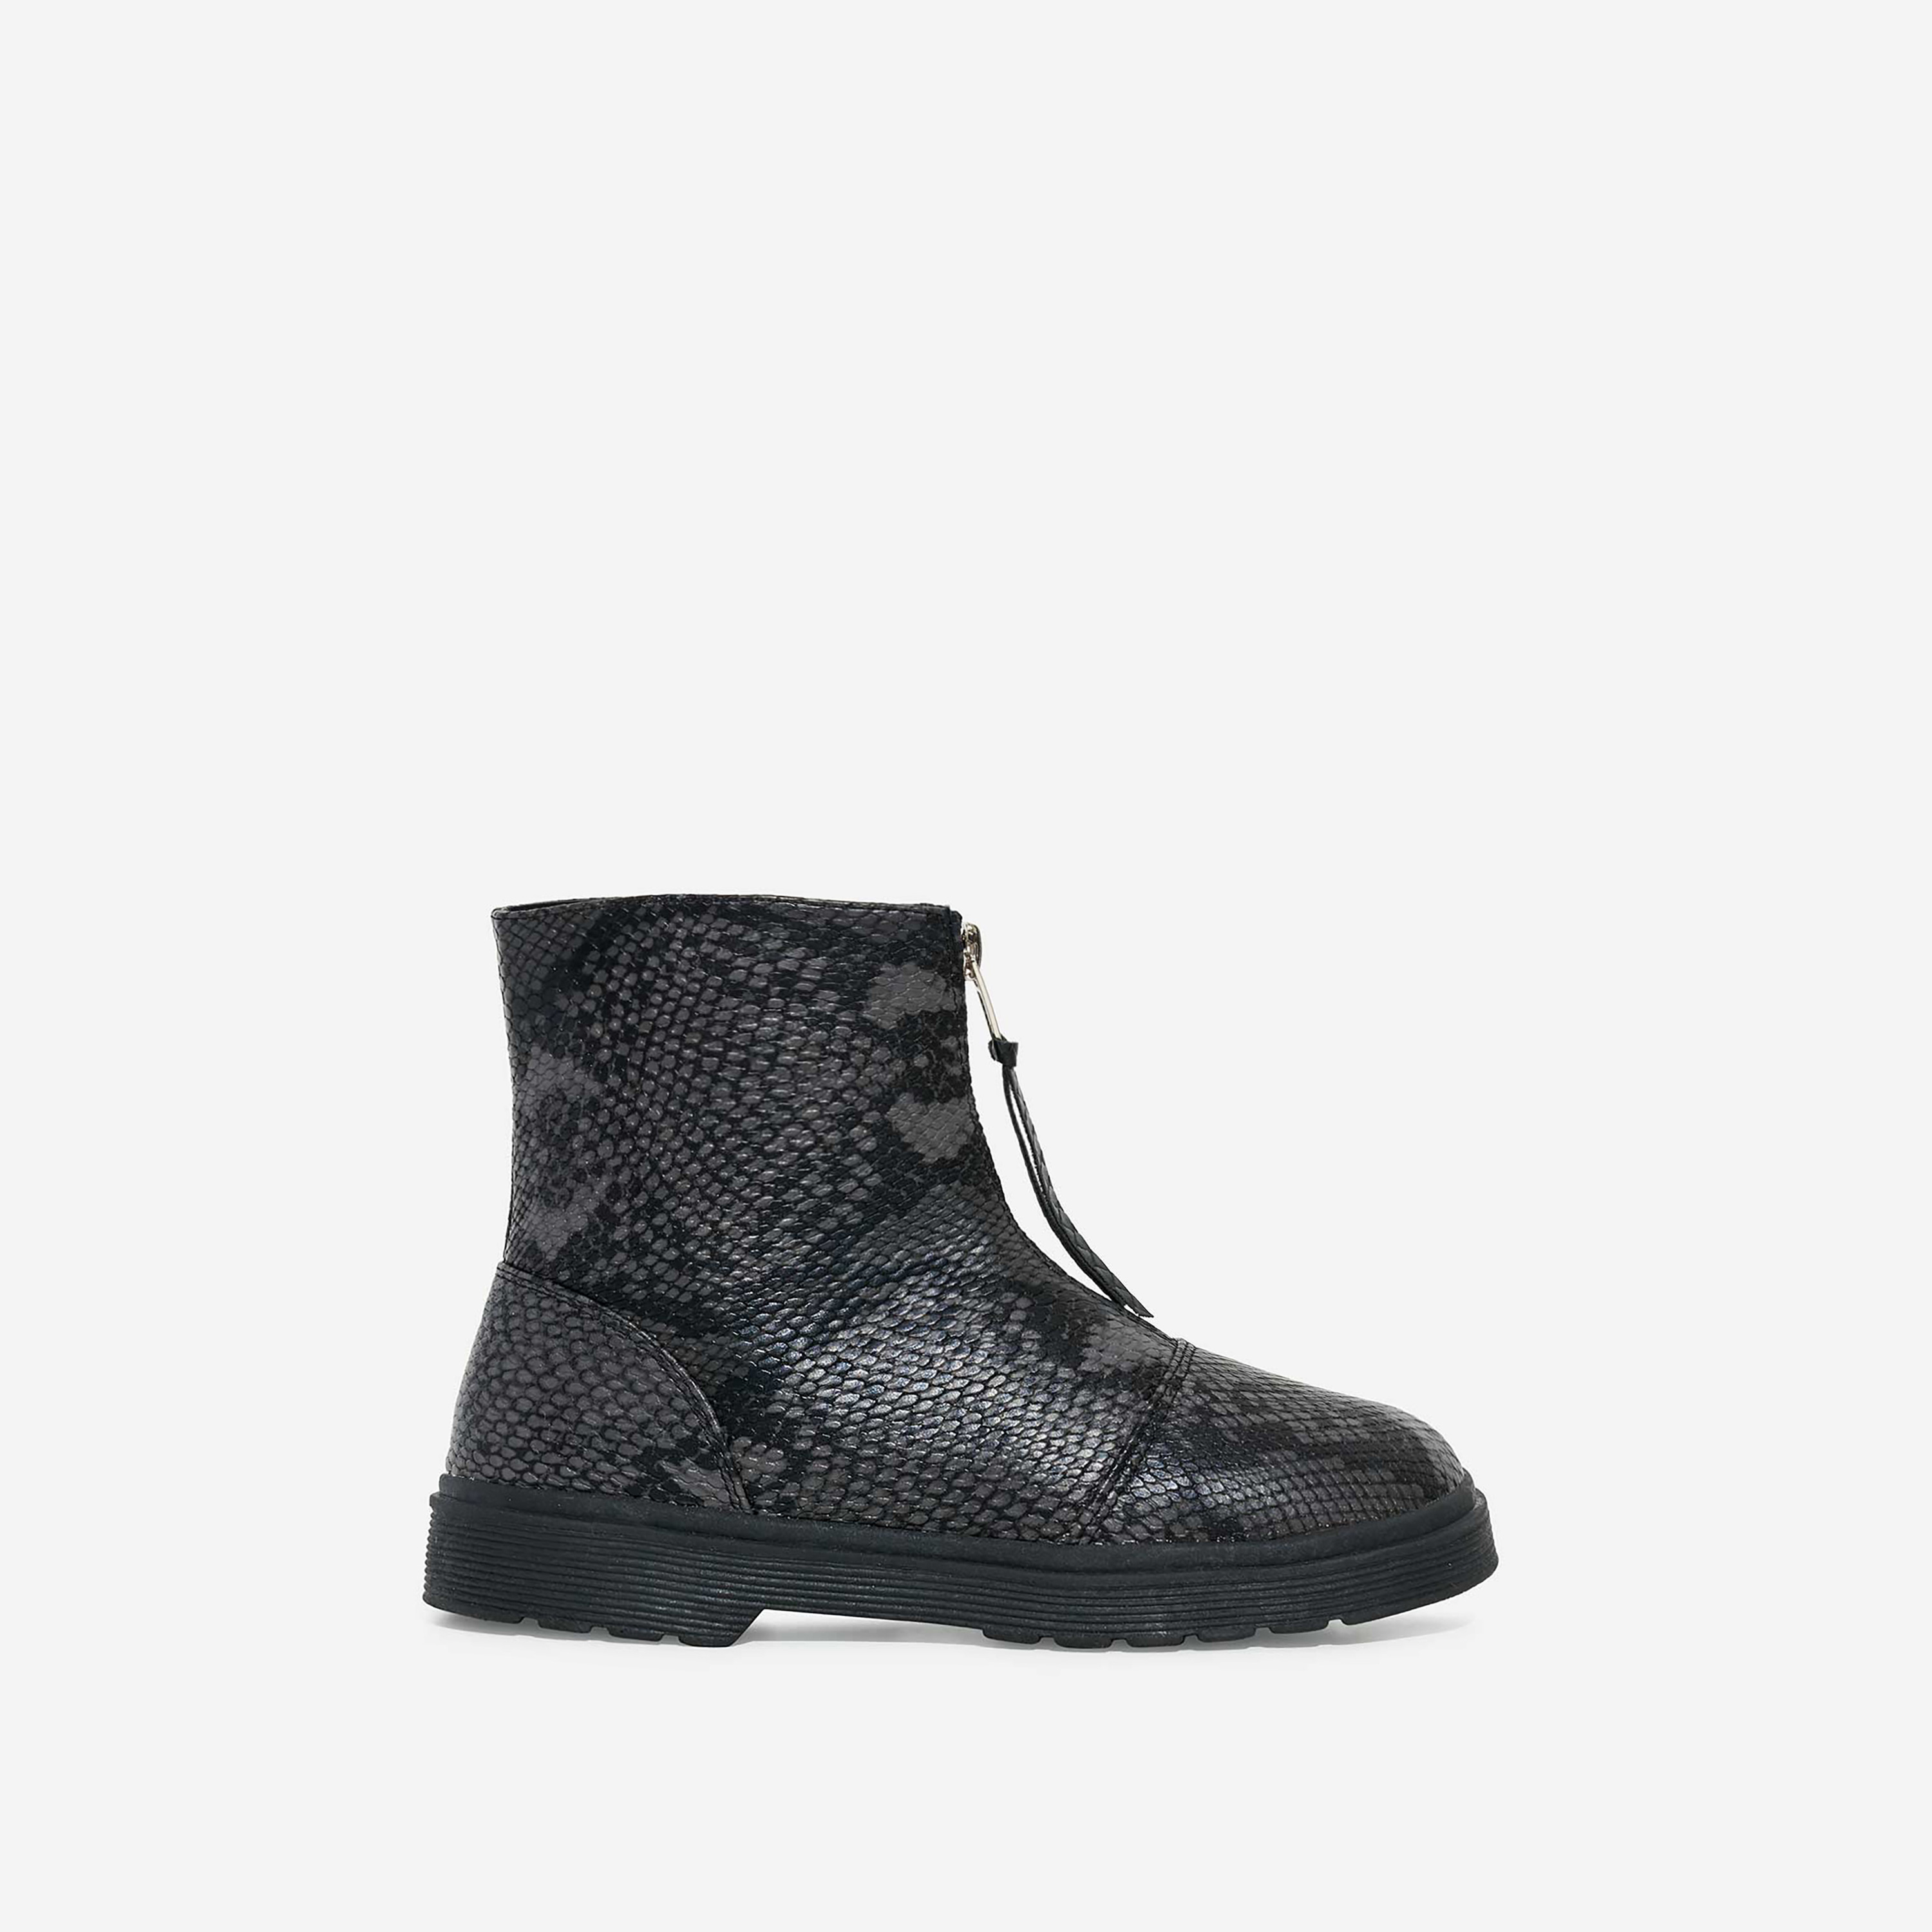 Centre Girl's Zip Detail Ankle Biker Boots In Grey Snake Print Faux Leather